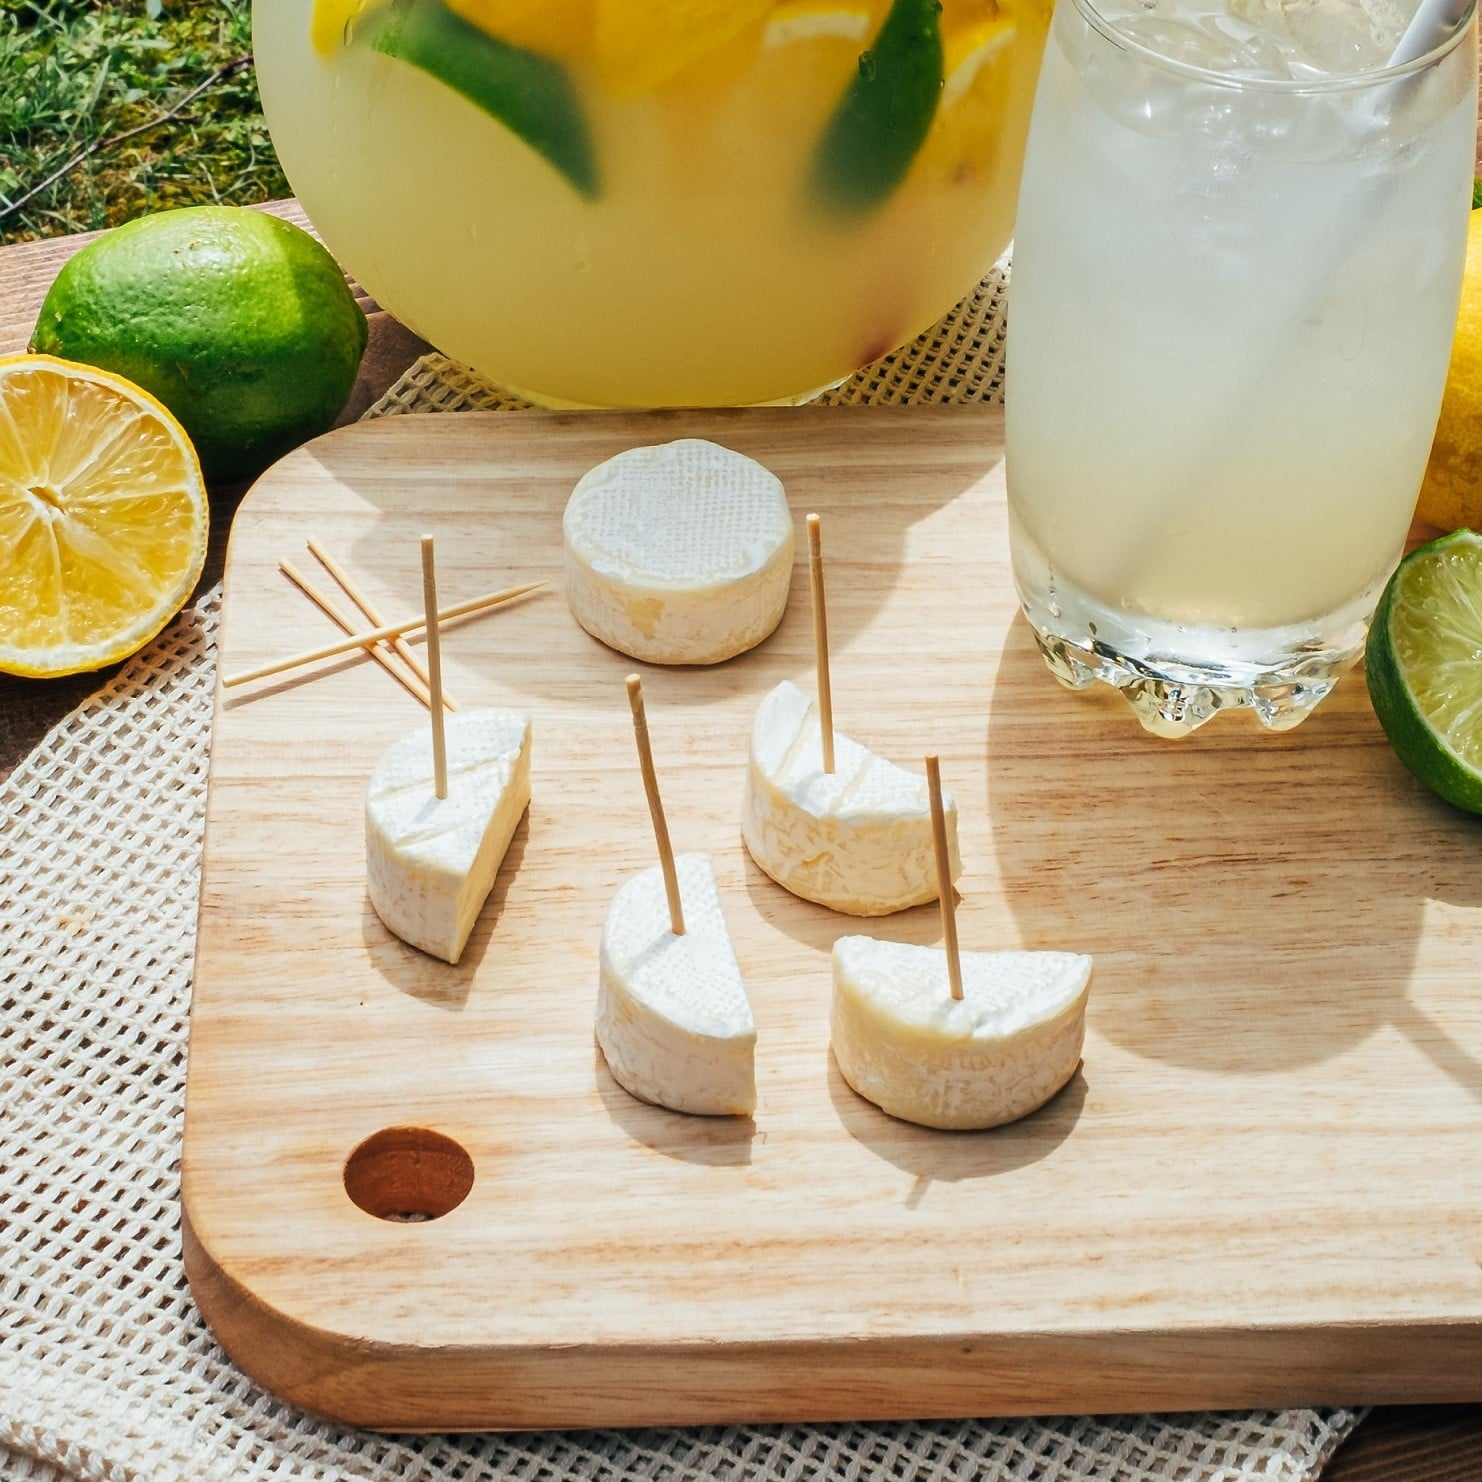 ile de france brie bites with fresh lemonade